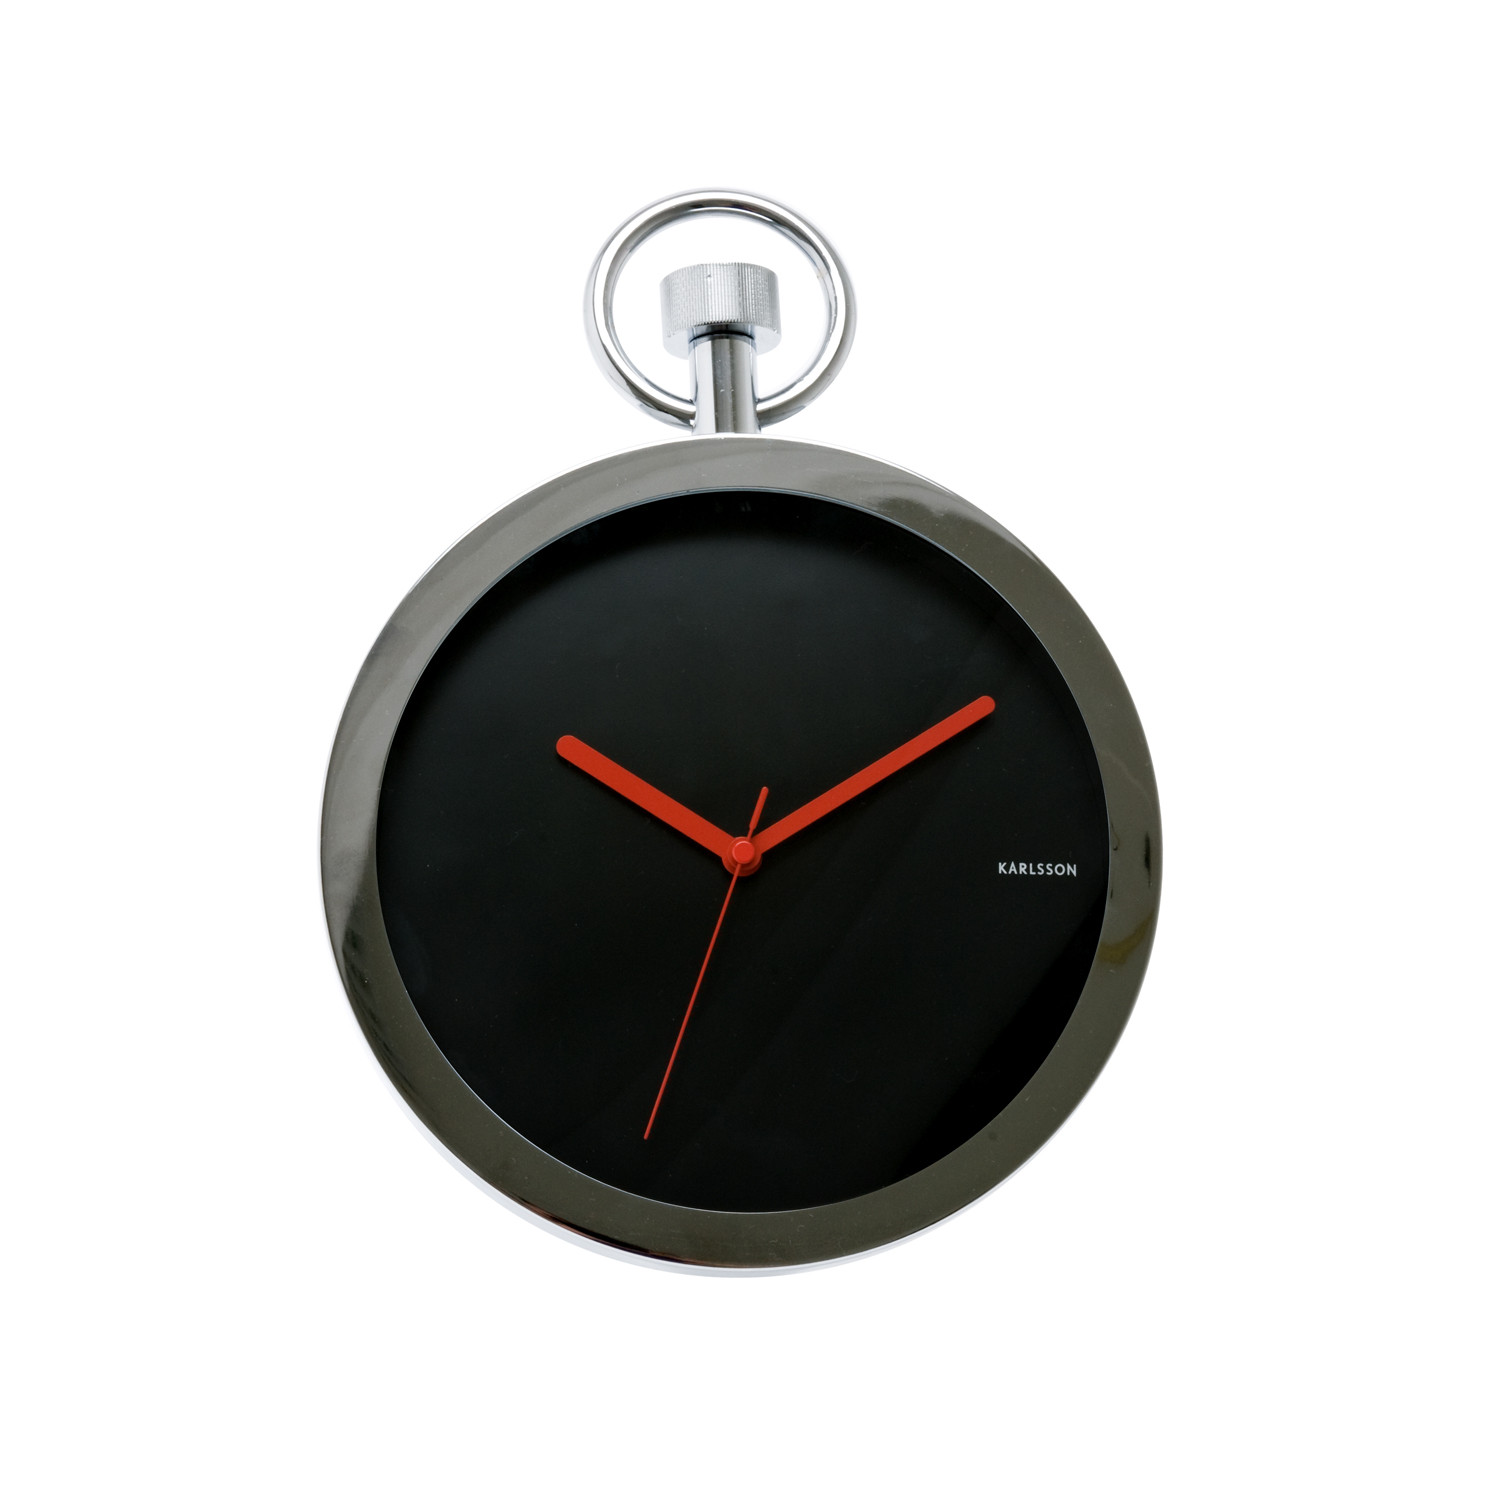 Wall clock pocket watch chrome black karlsson for Touch of modern clock